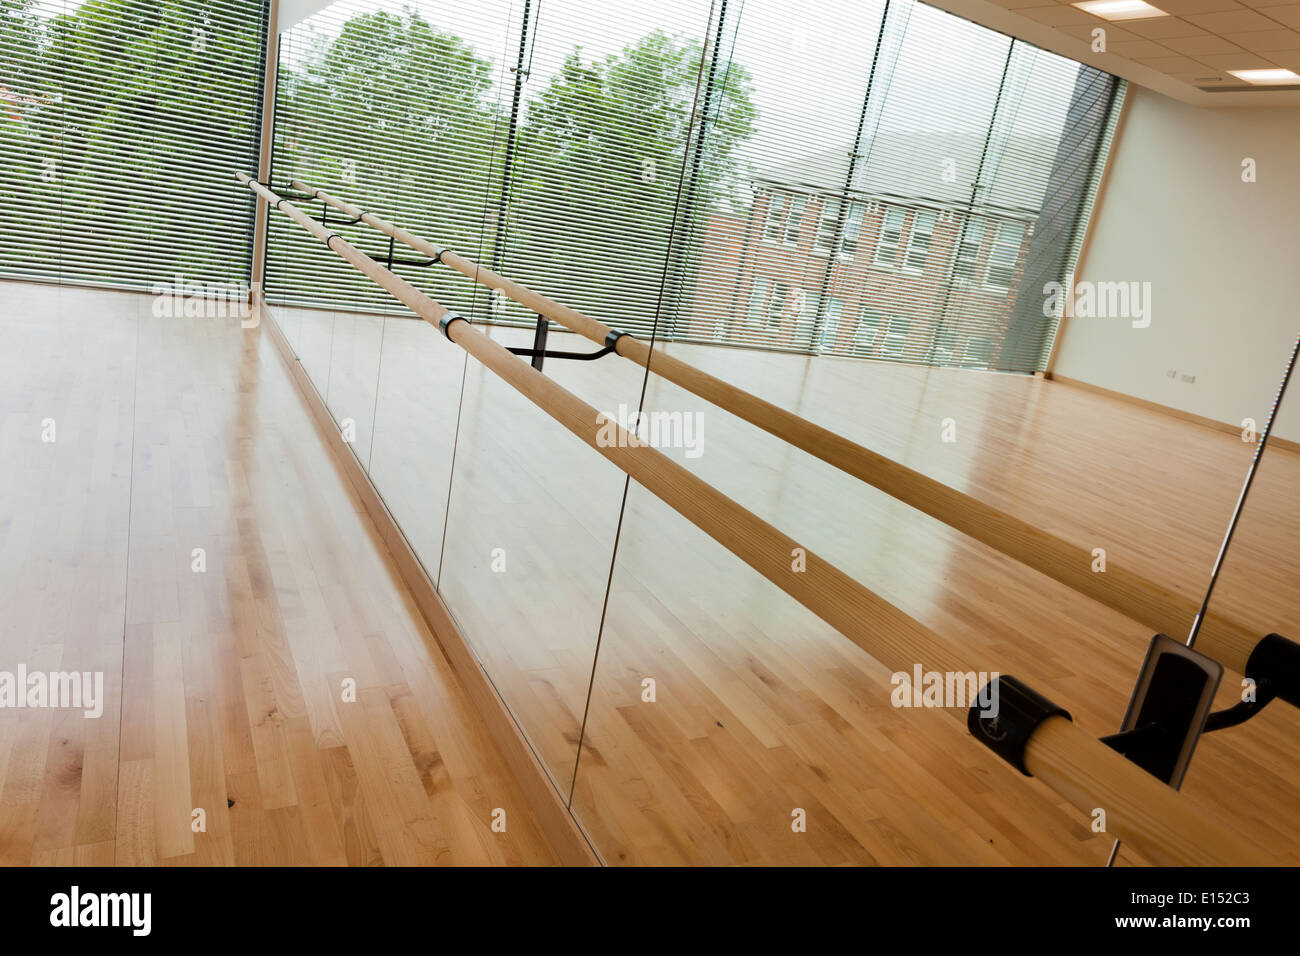 Dance studio and mirror wall at Notting Hill Ealing High School. - Stock Image